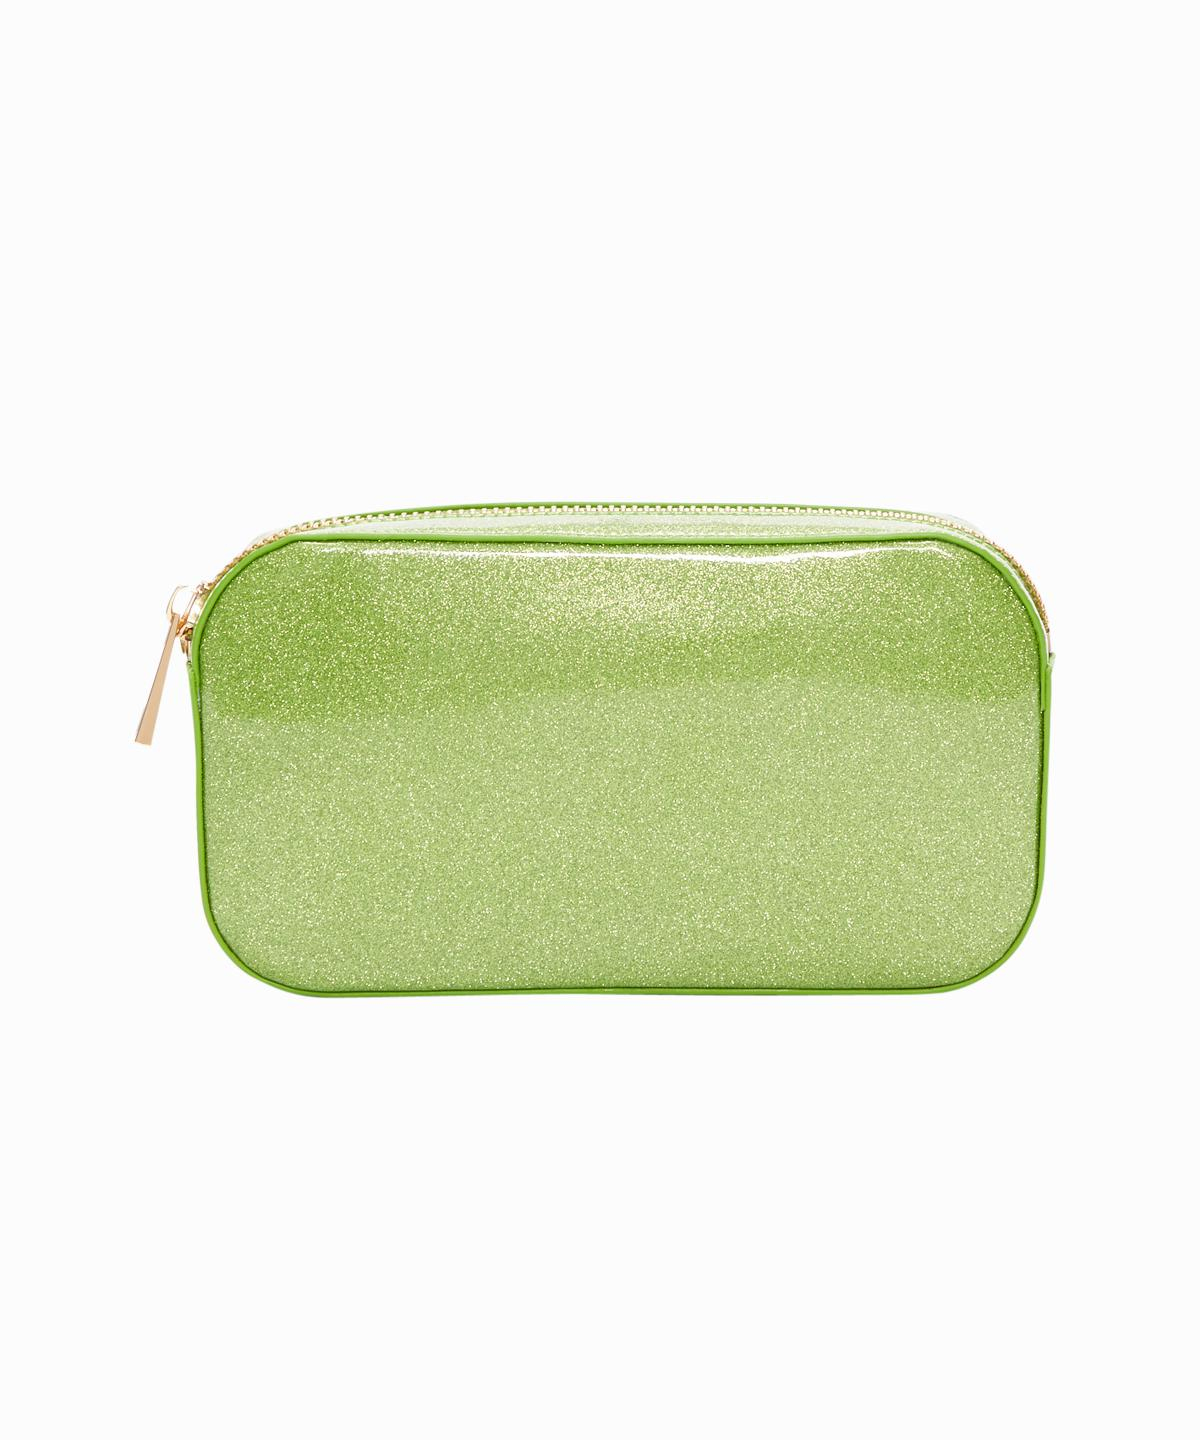 Exclusive Green Glitter Small Zippered Pouch